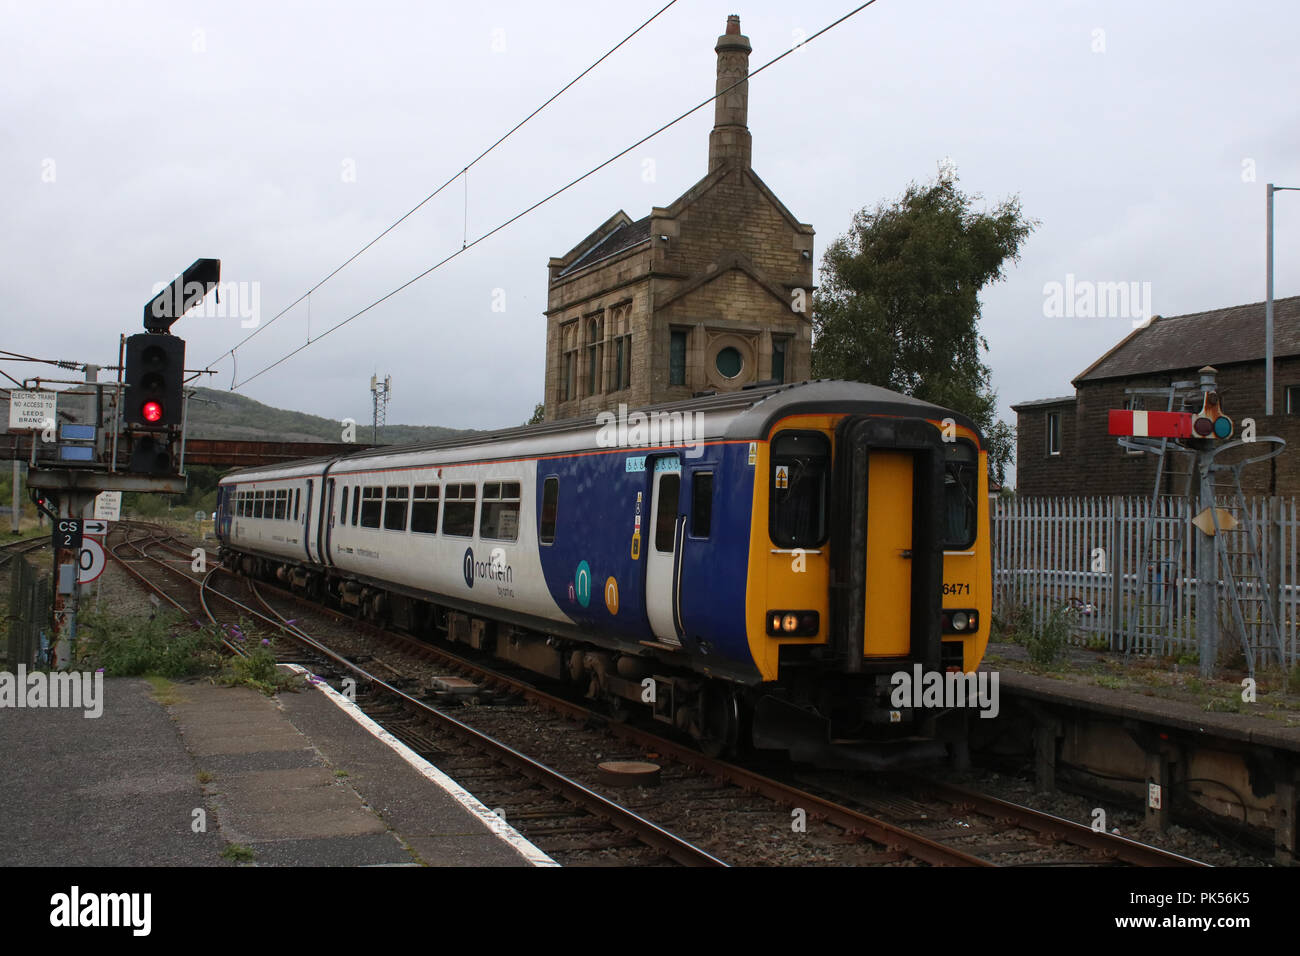 Class 156 two car diesel multiple unit train in Northern livery arriving at Carnforth railway station with a passenger service to Lancaster. - Stock Image